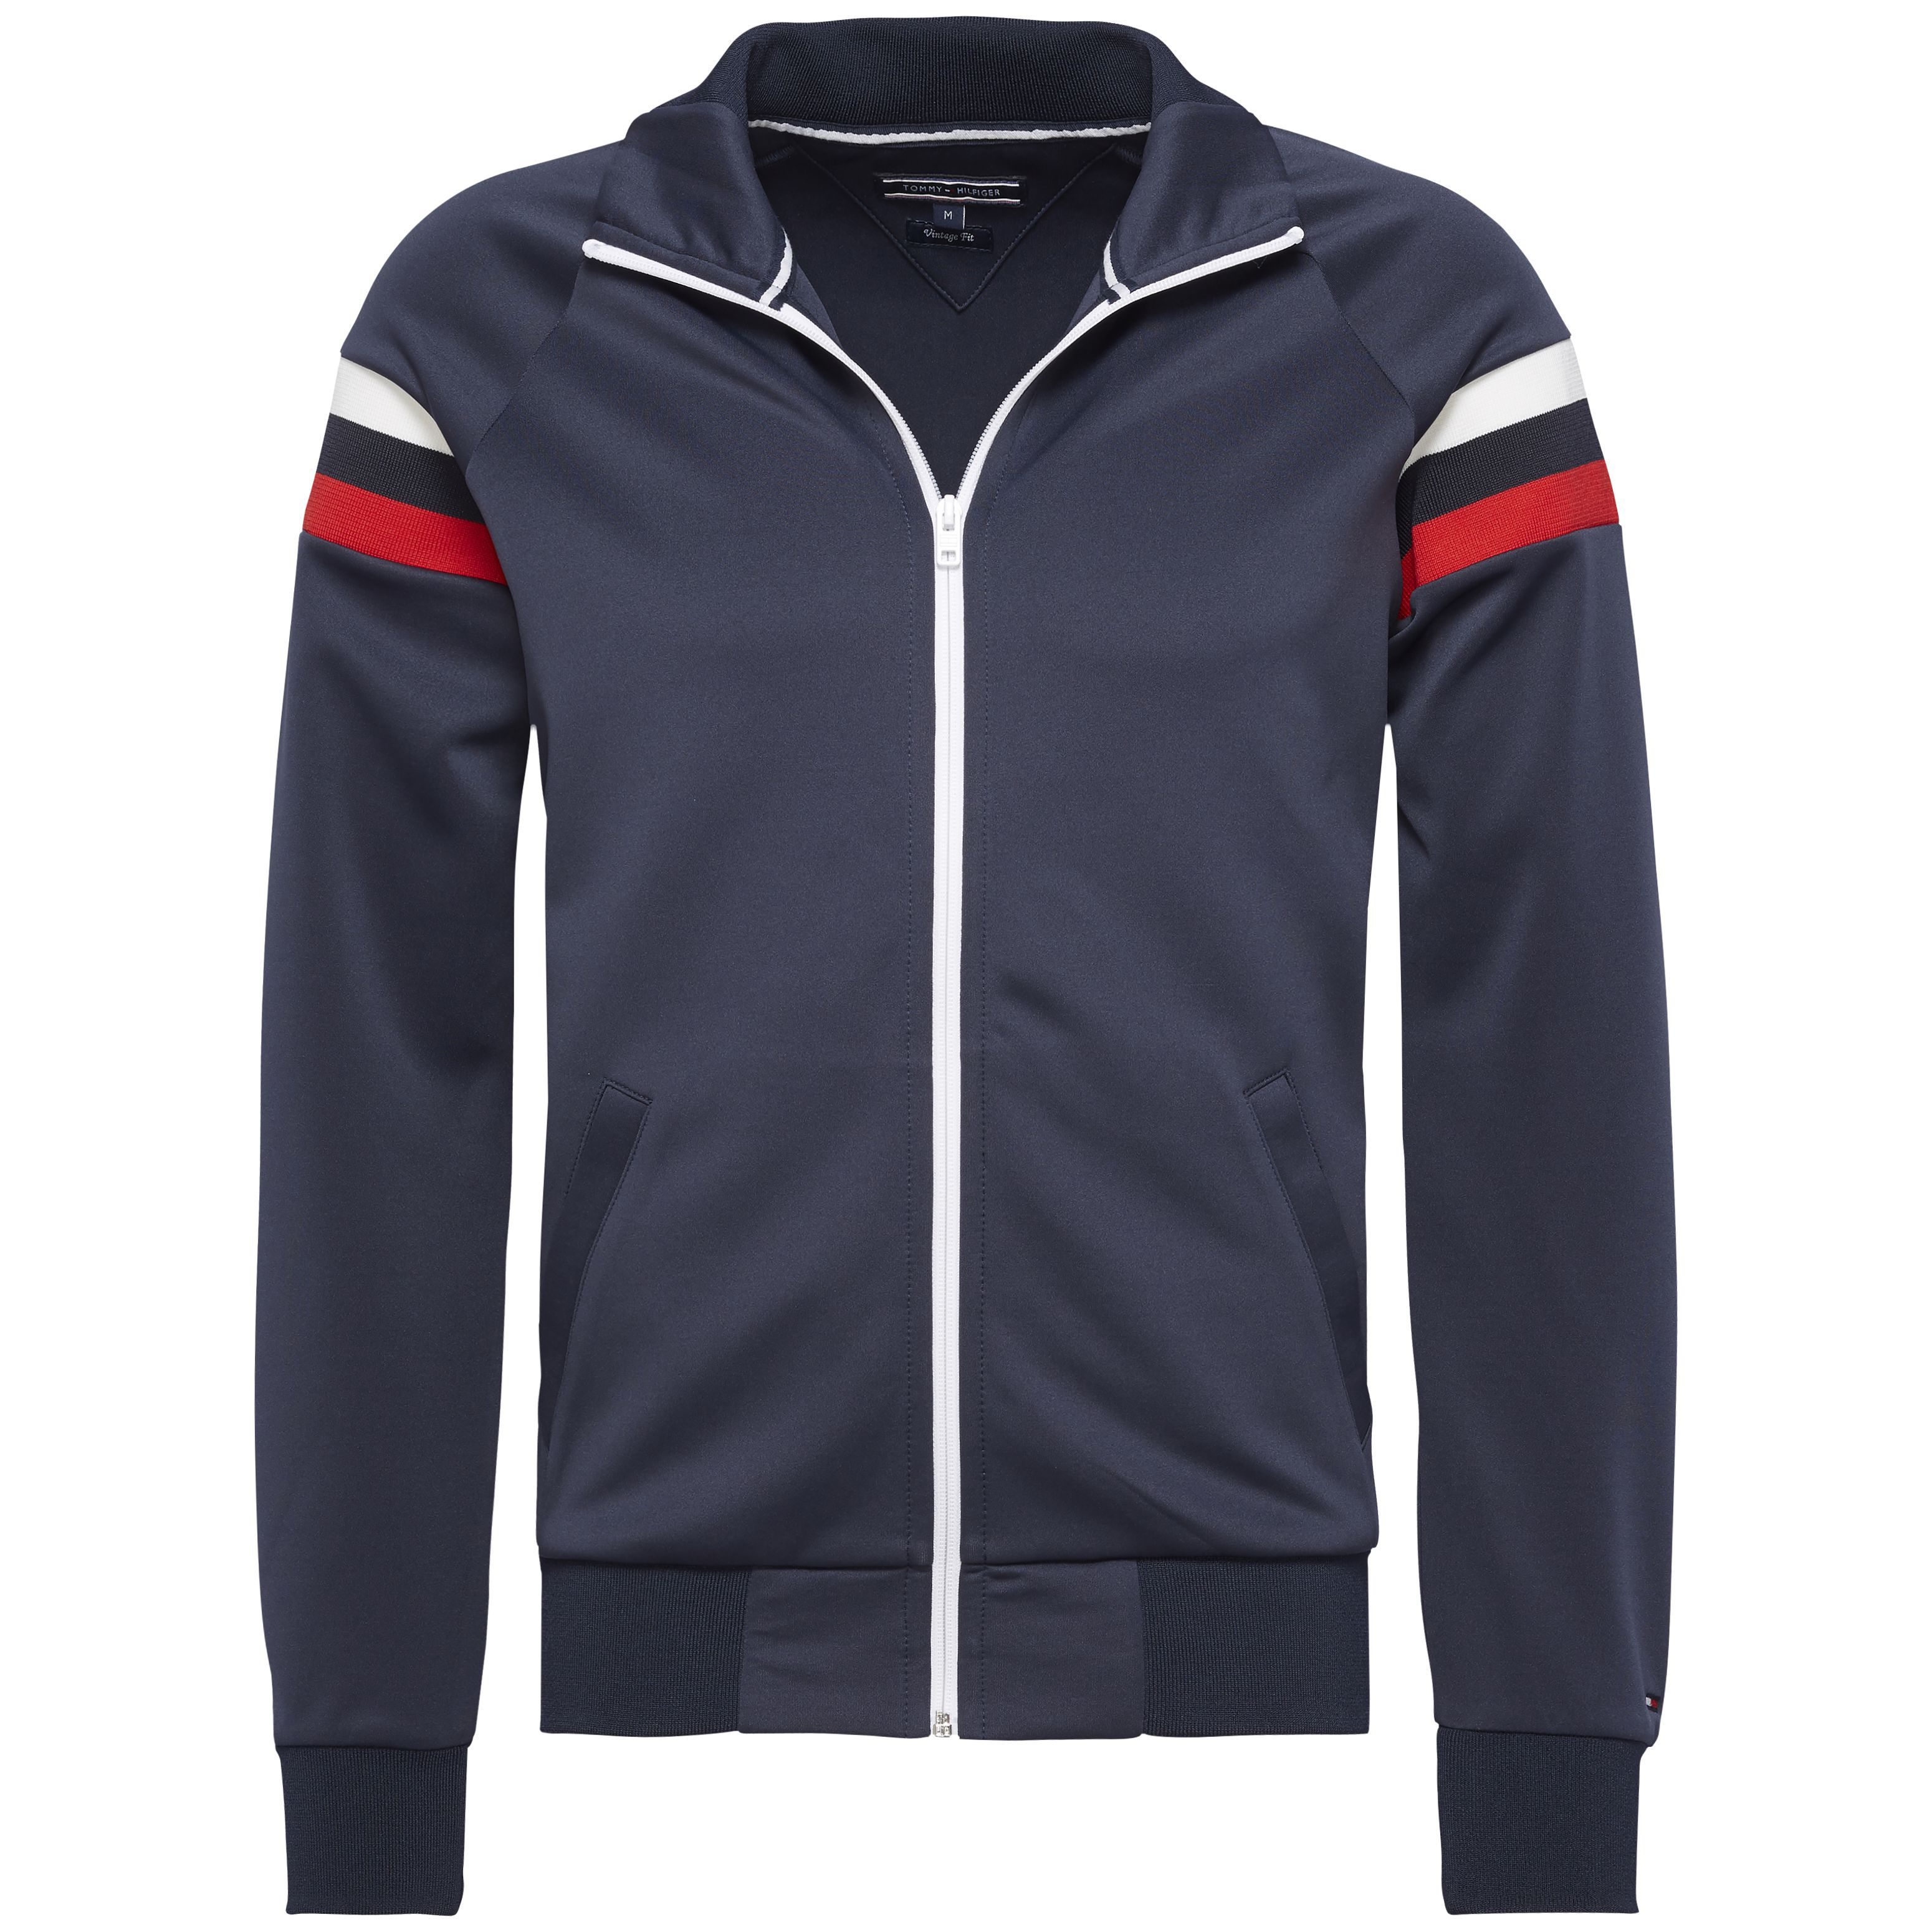 Men's Tommy Hilfiger Mick zip through track top, Midnight